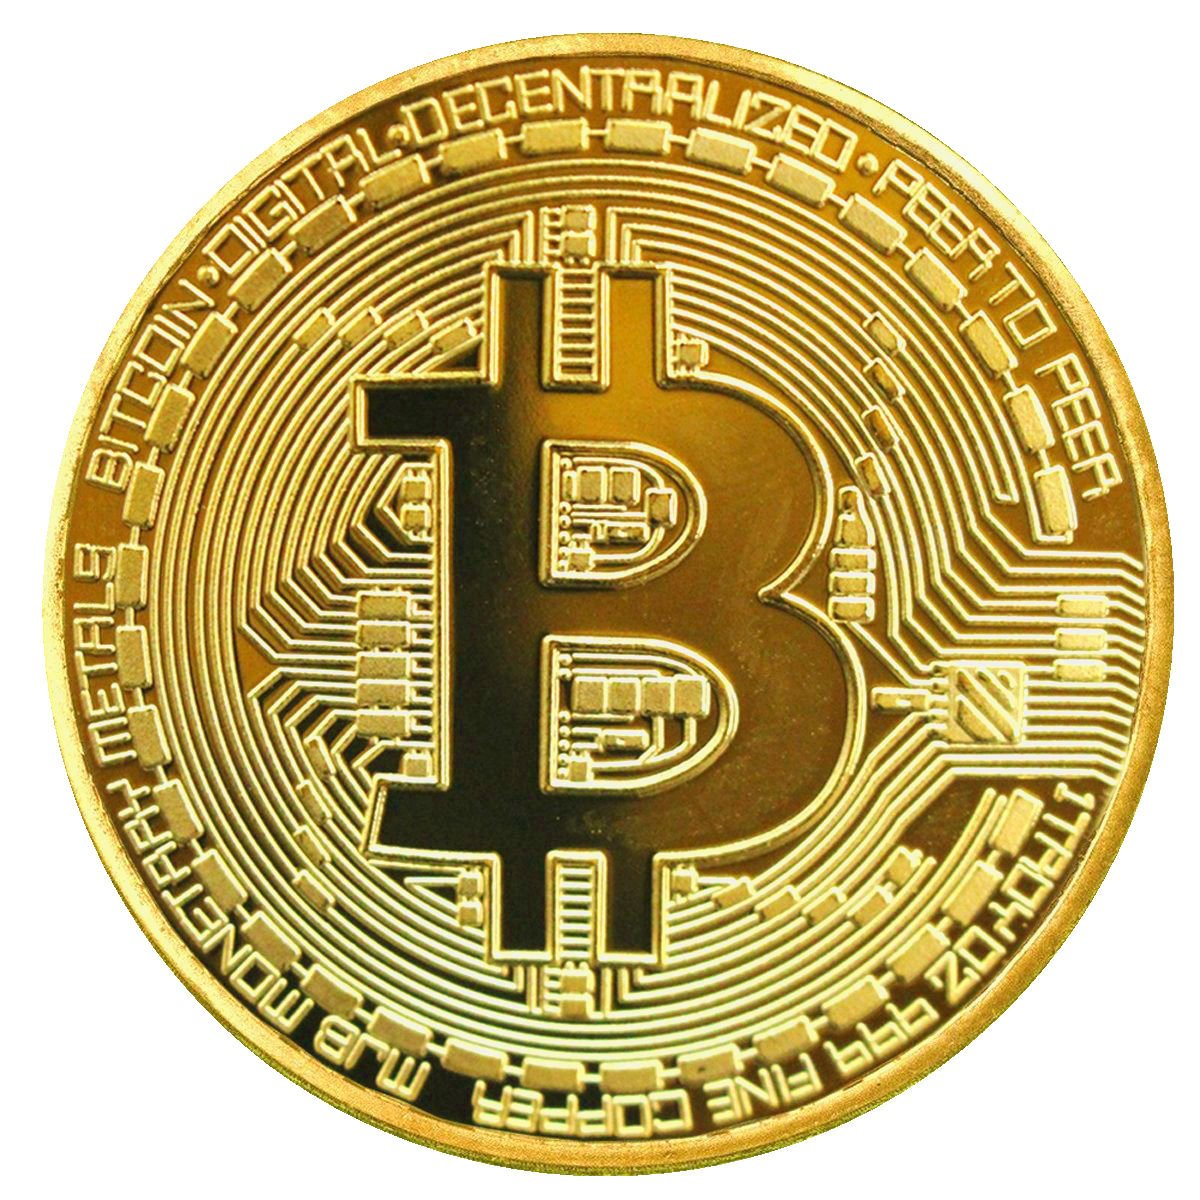 1Pcs Rare Collectible Golden Iron Bitcoin Commemorative Plated Miner Coin Gift